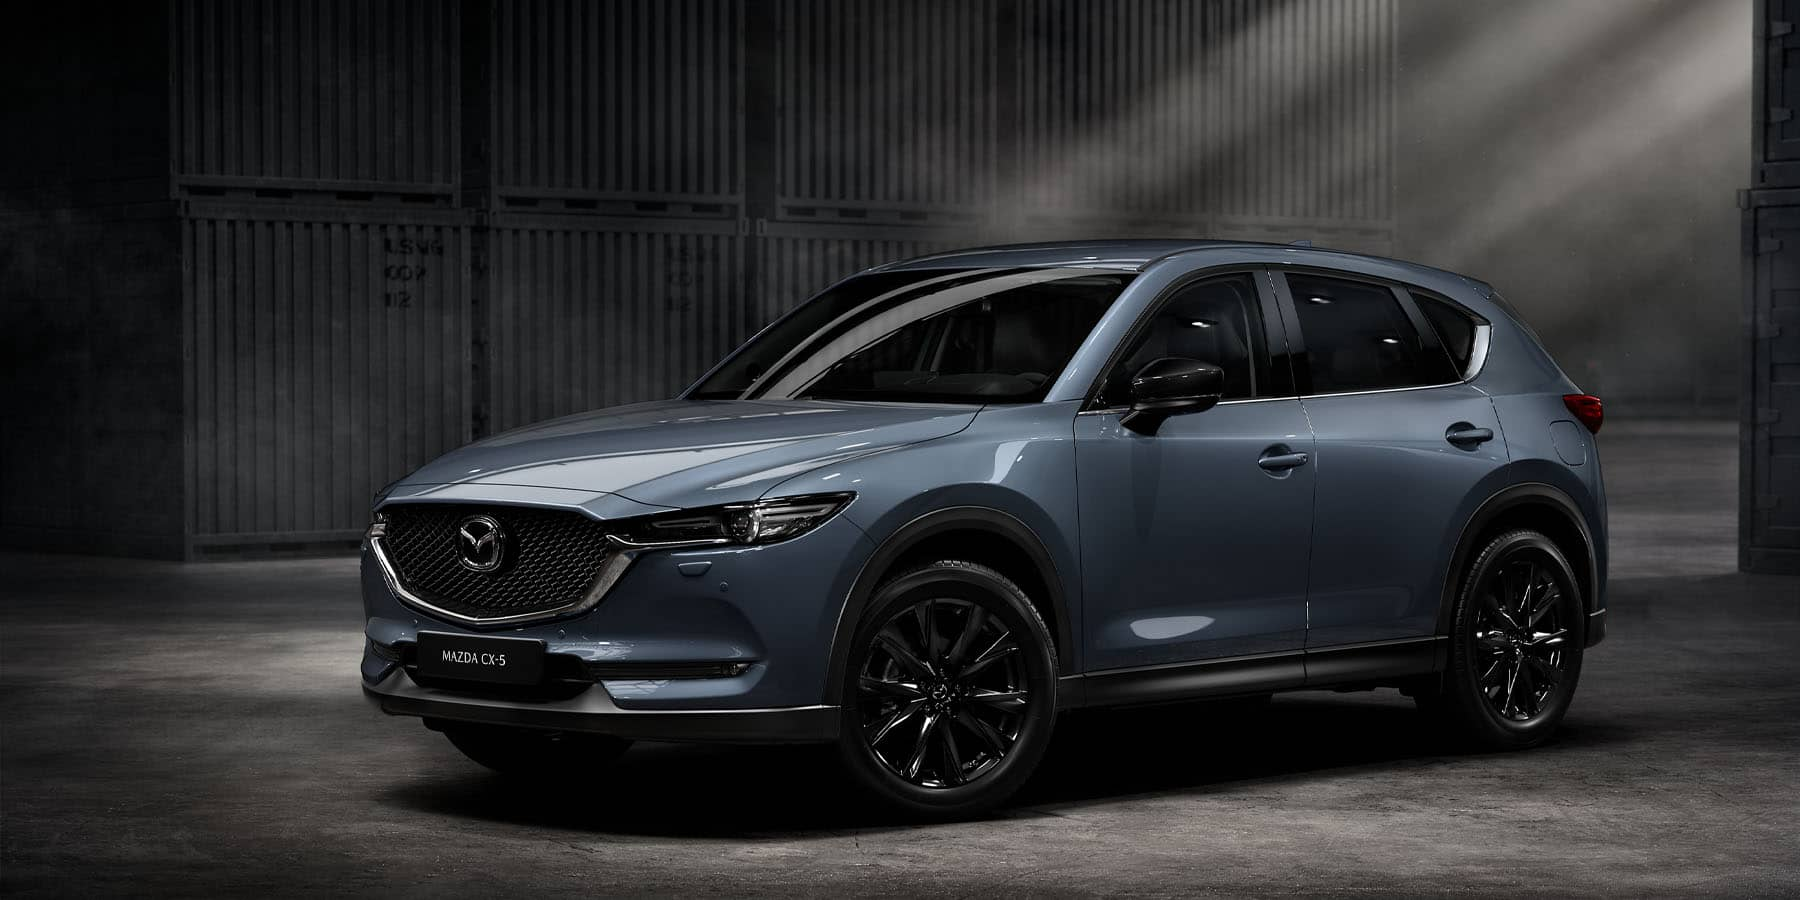 Mazda CX 5 Blackout Exterior Min